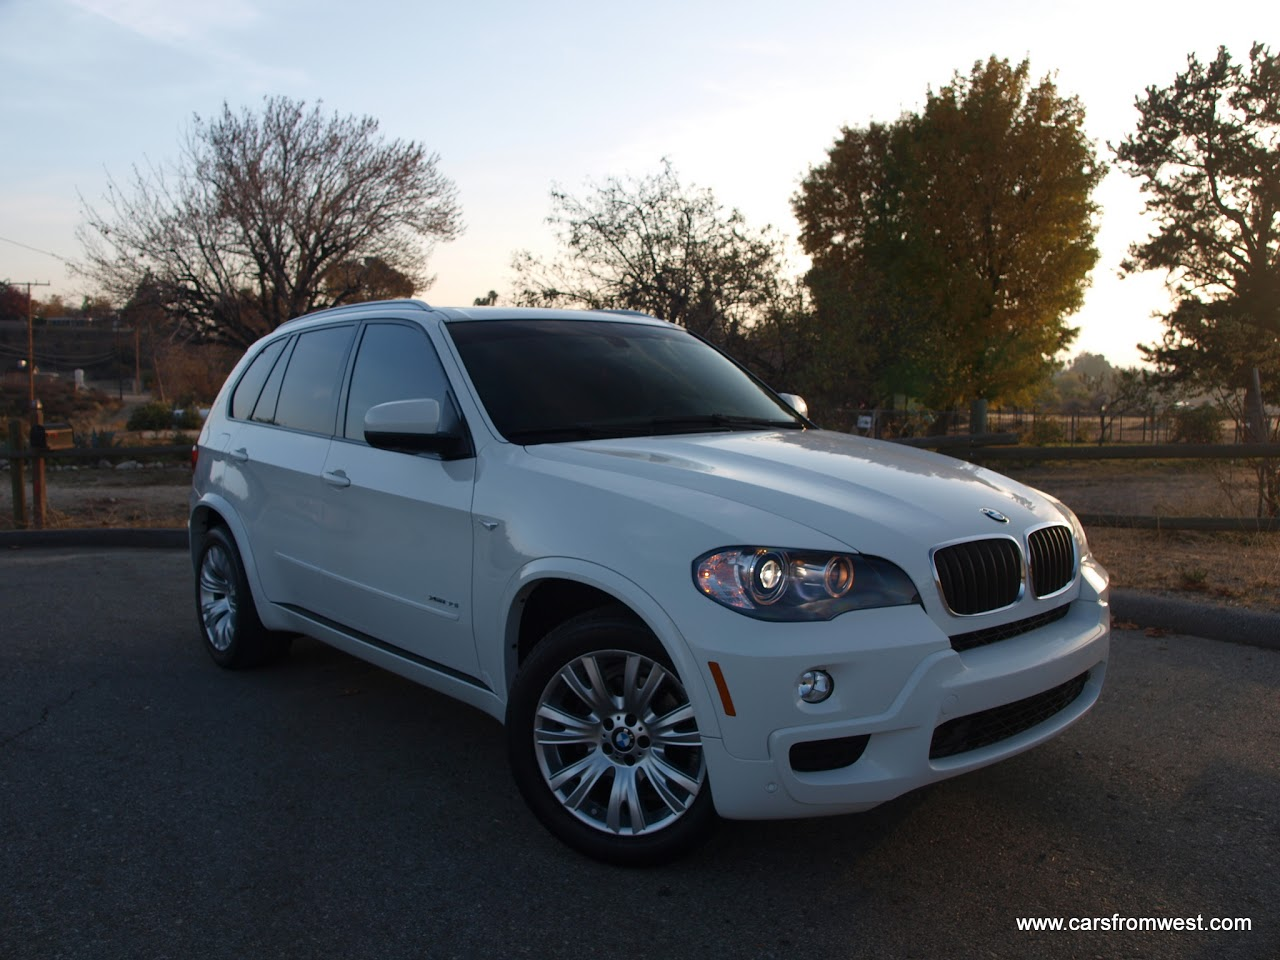 2010 Bmw X5 M-package - Buy Bmw X5 Product on Alibaba.com